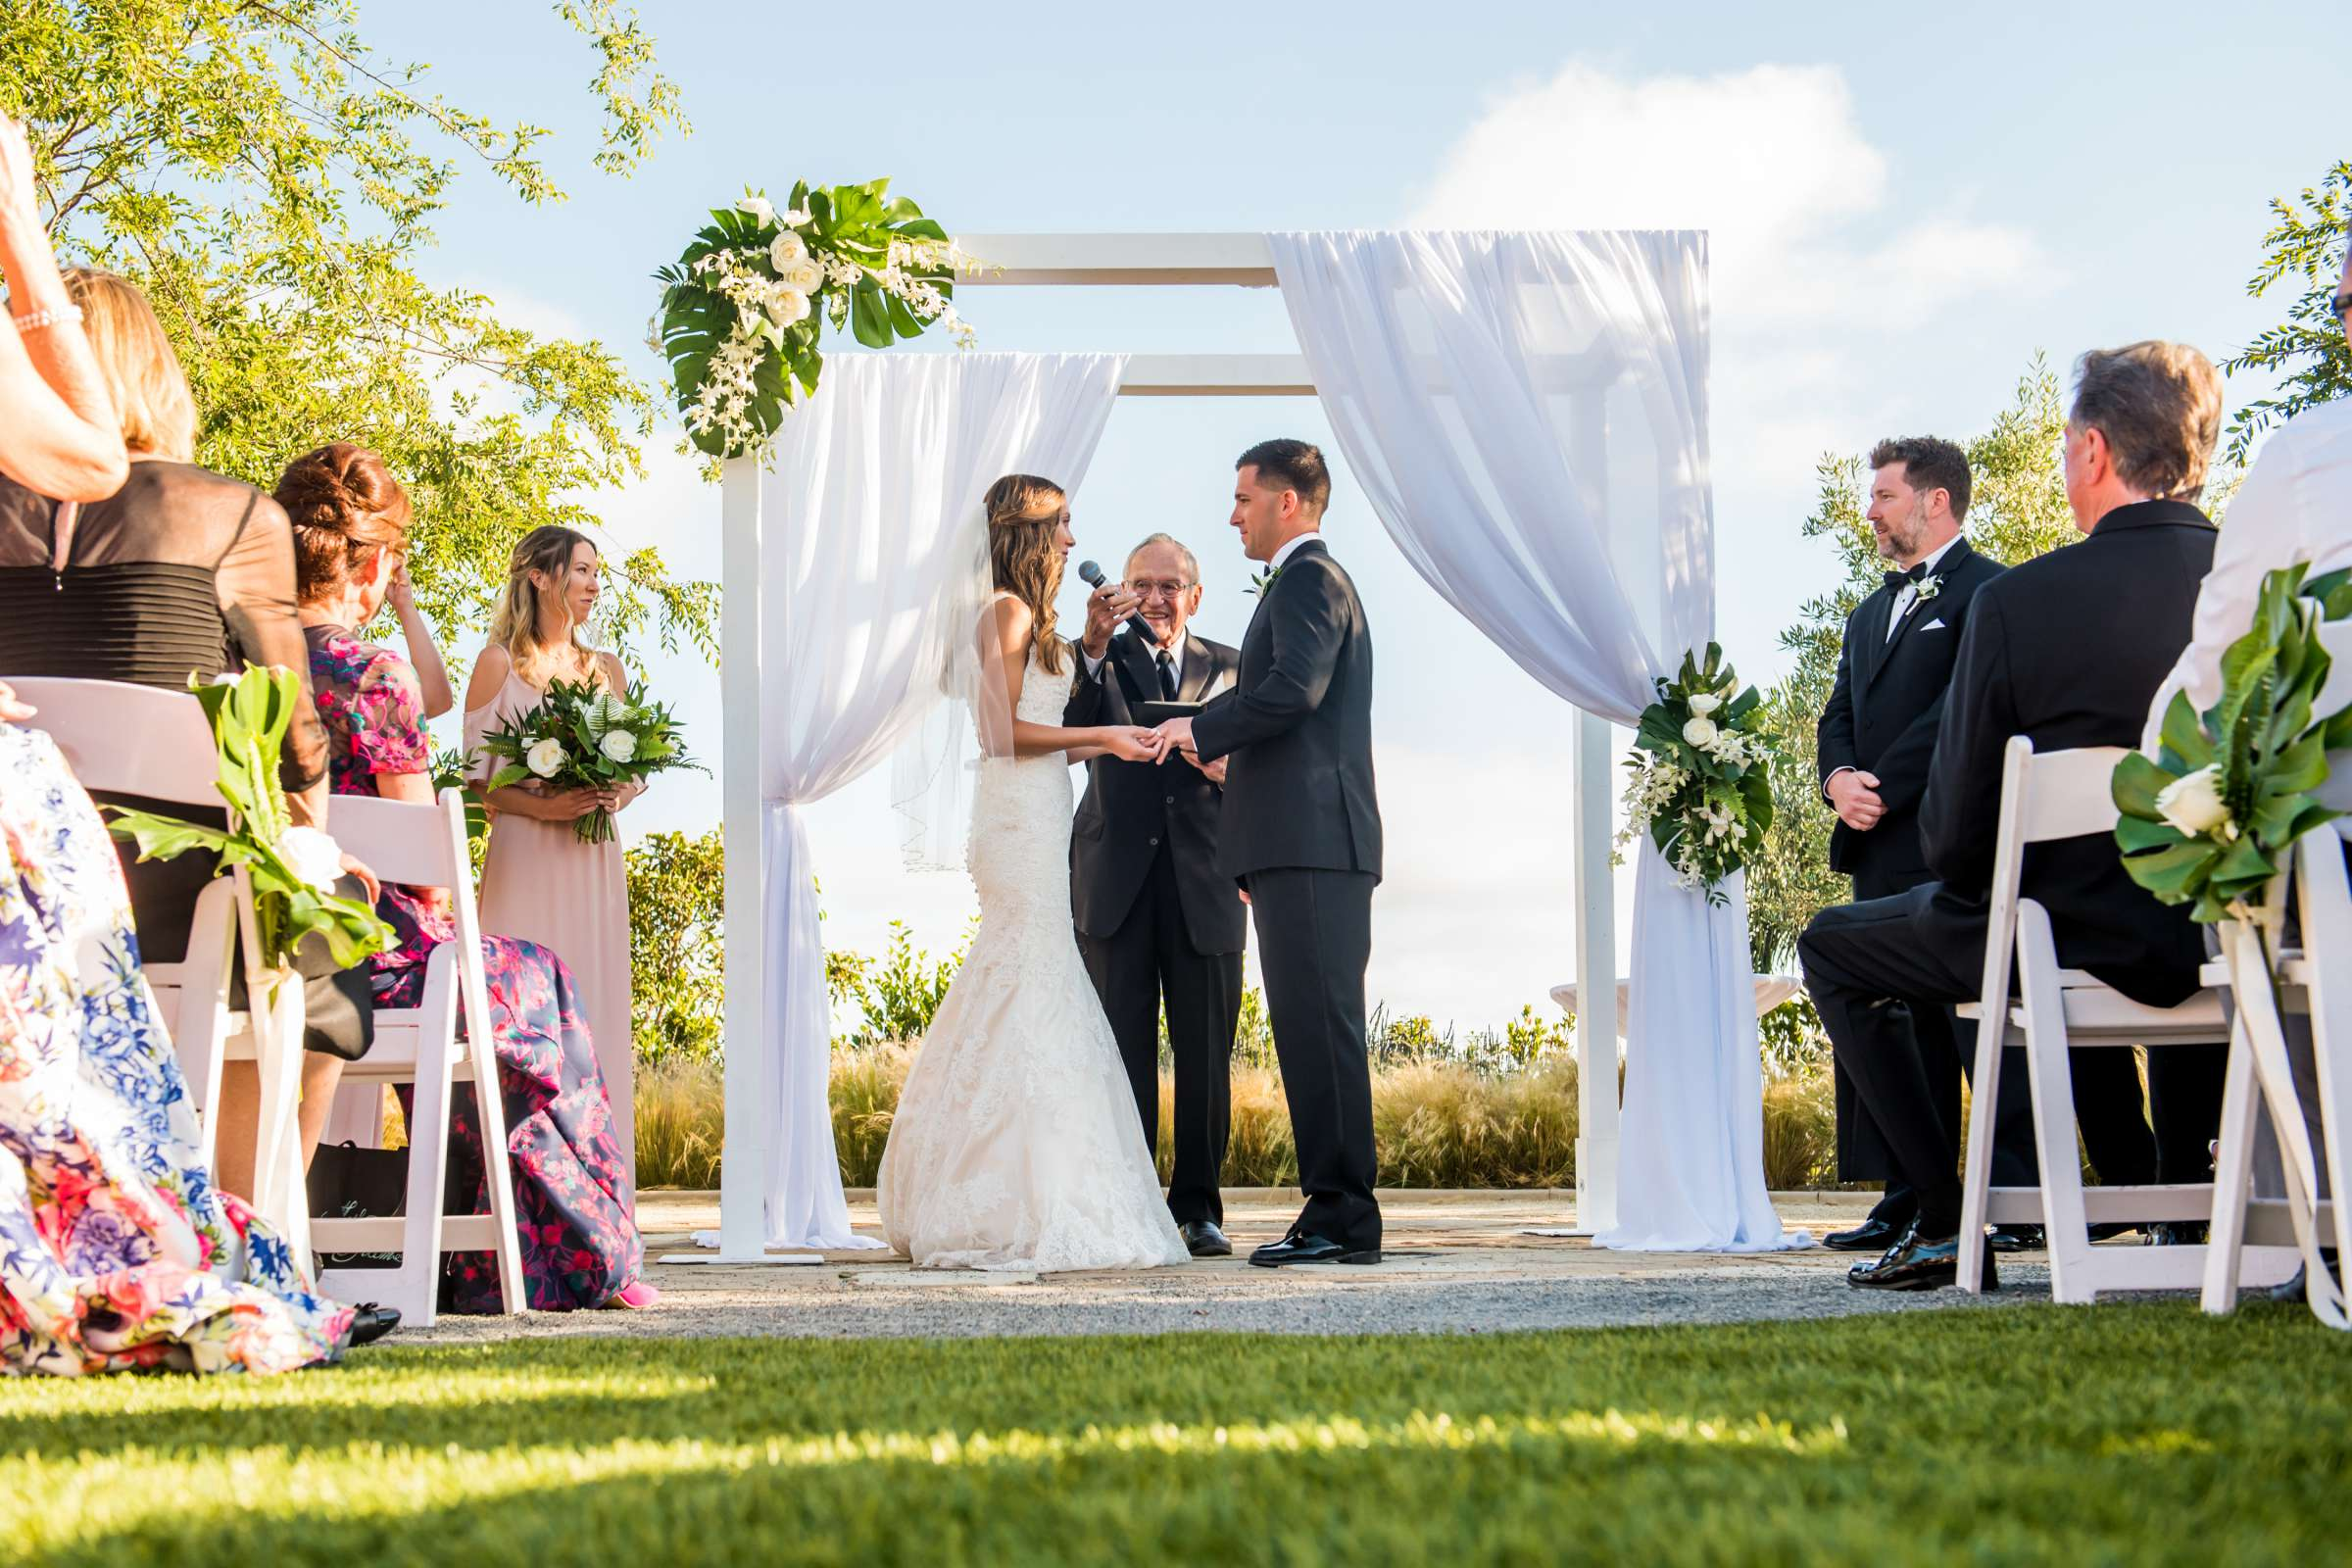 Sheraton Carlsbad Resort and Spa Wedding coordinated by Sweet Blossom Weddings, Tayla and Andrew Wedding Photo #479861 by True Photography